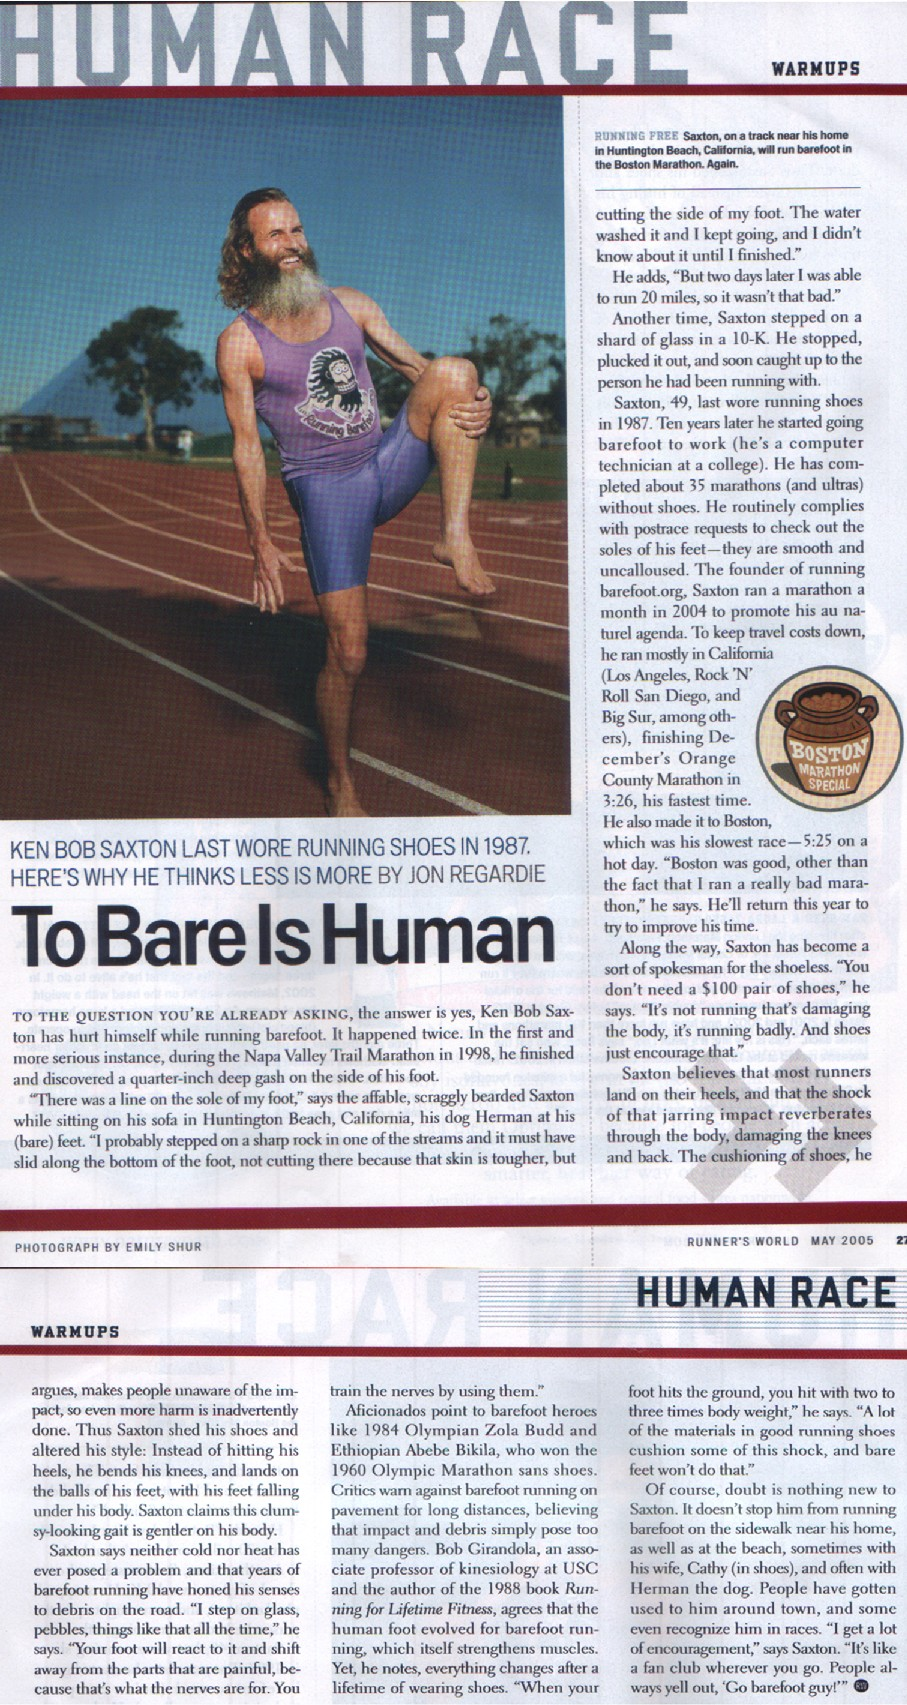 To Bare is Human